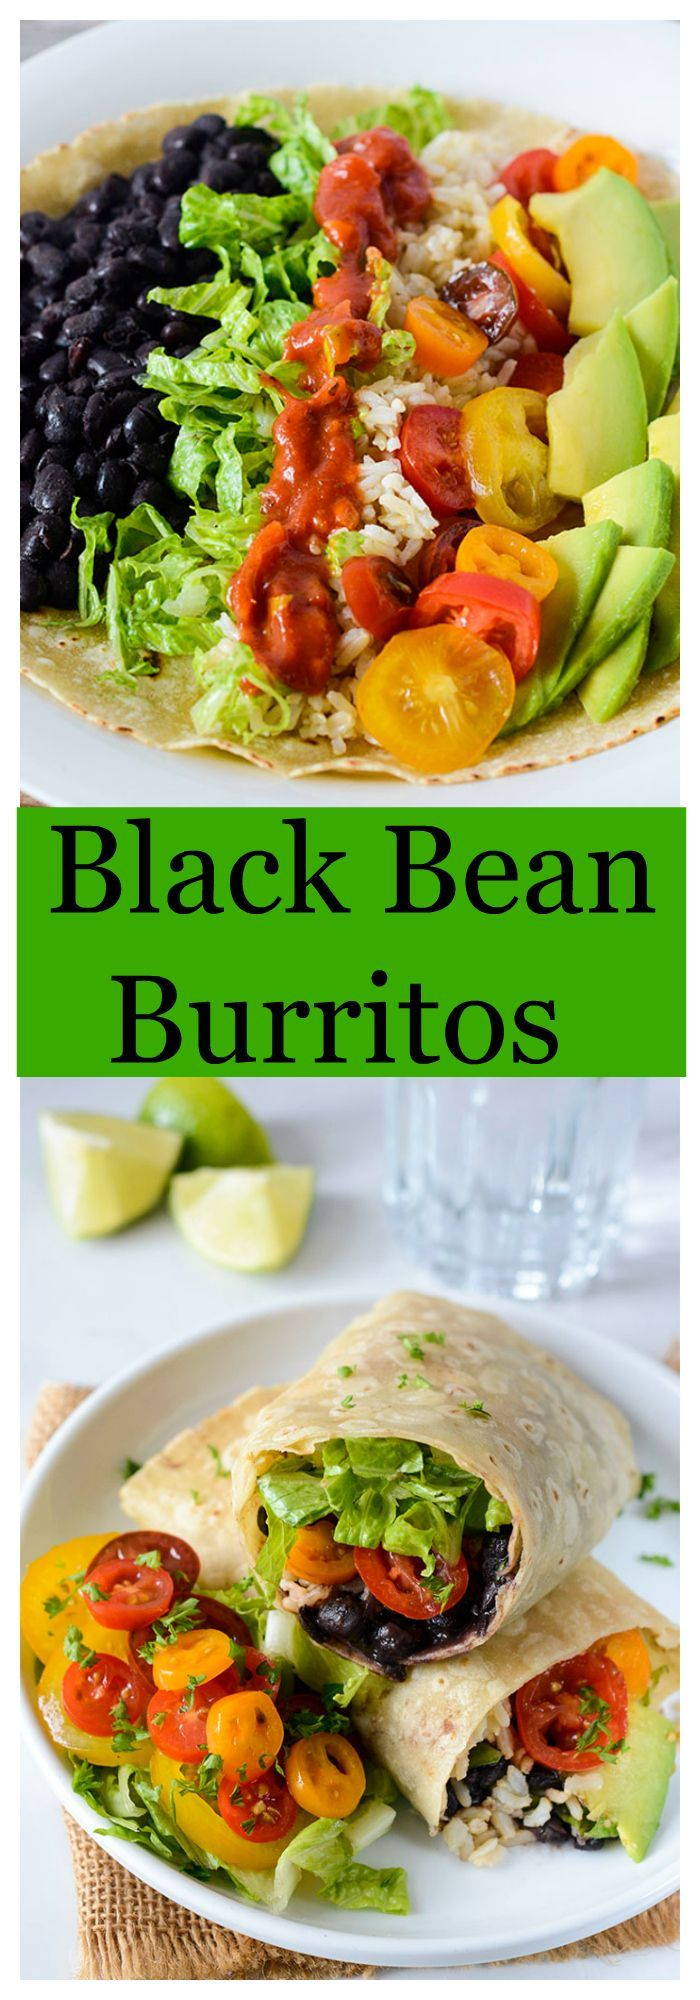 Do you find that you are at a loss in what dish to prepare, when you are busy? Here is a quick and easy dish that often saves the day! As a mother its great to